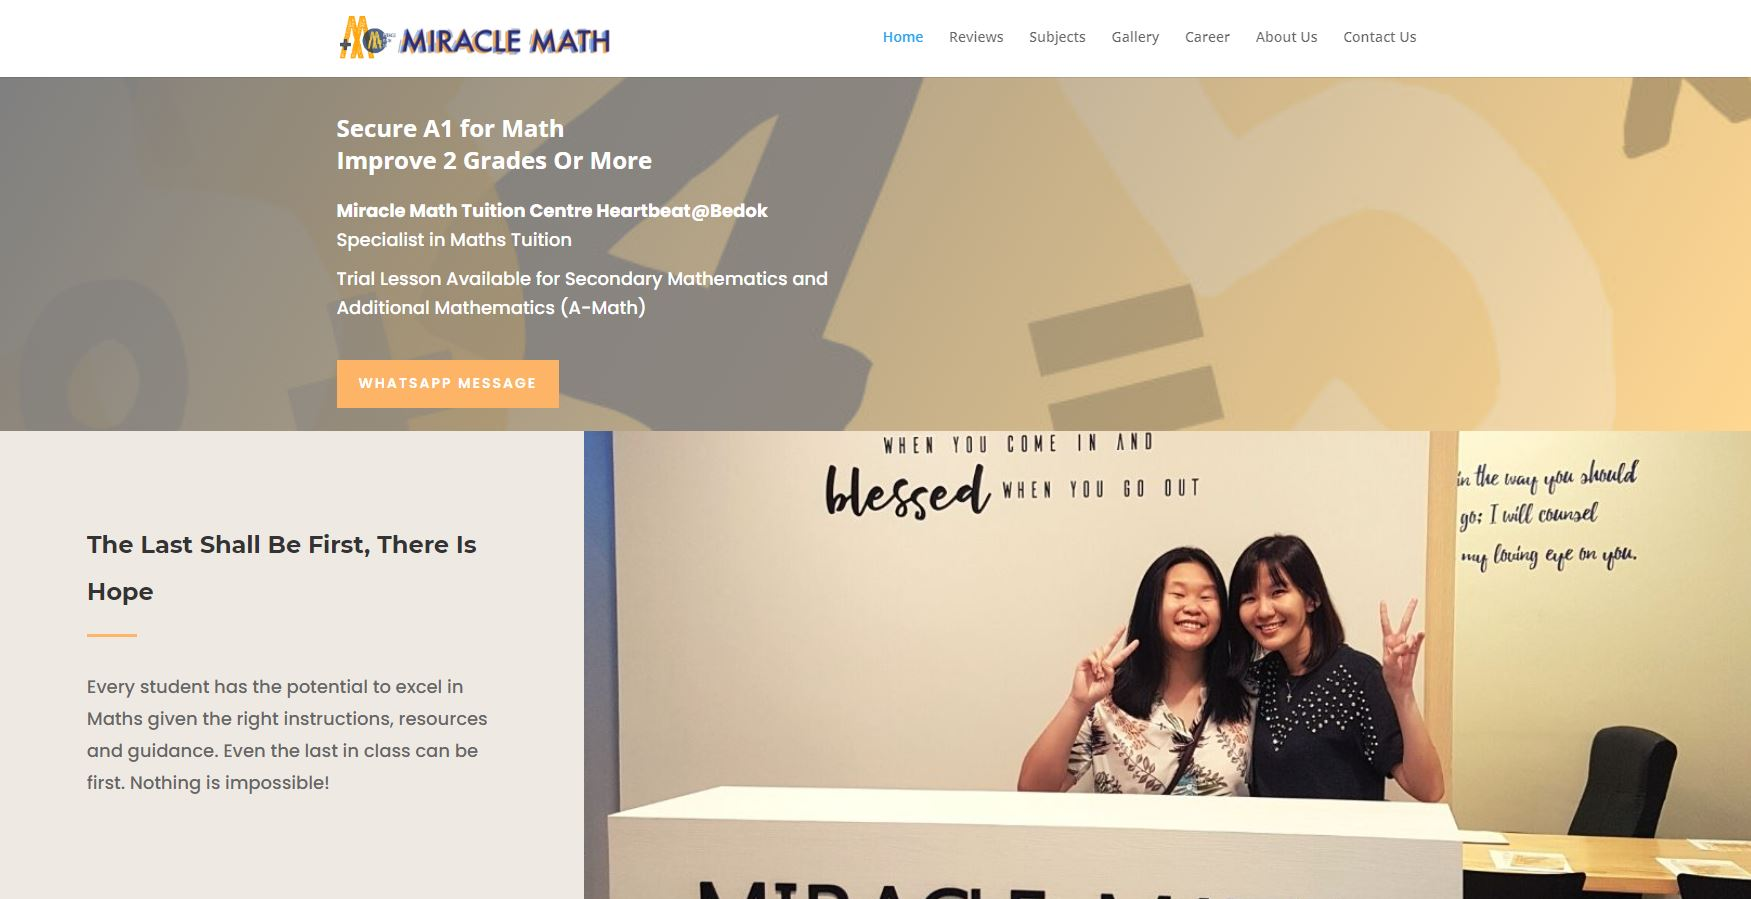 Miracle-Math-Tuition-Centre